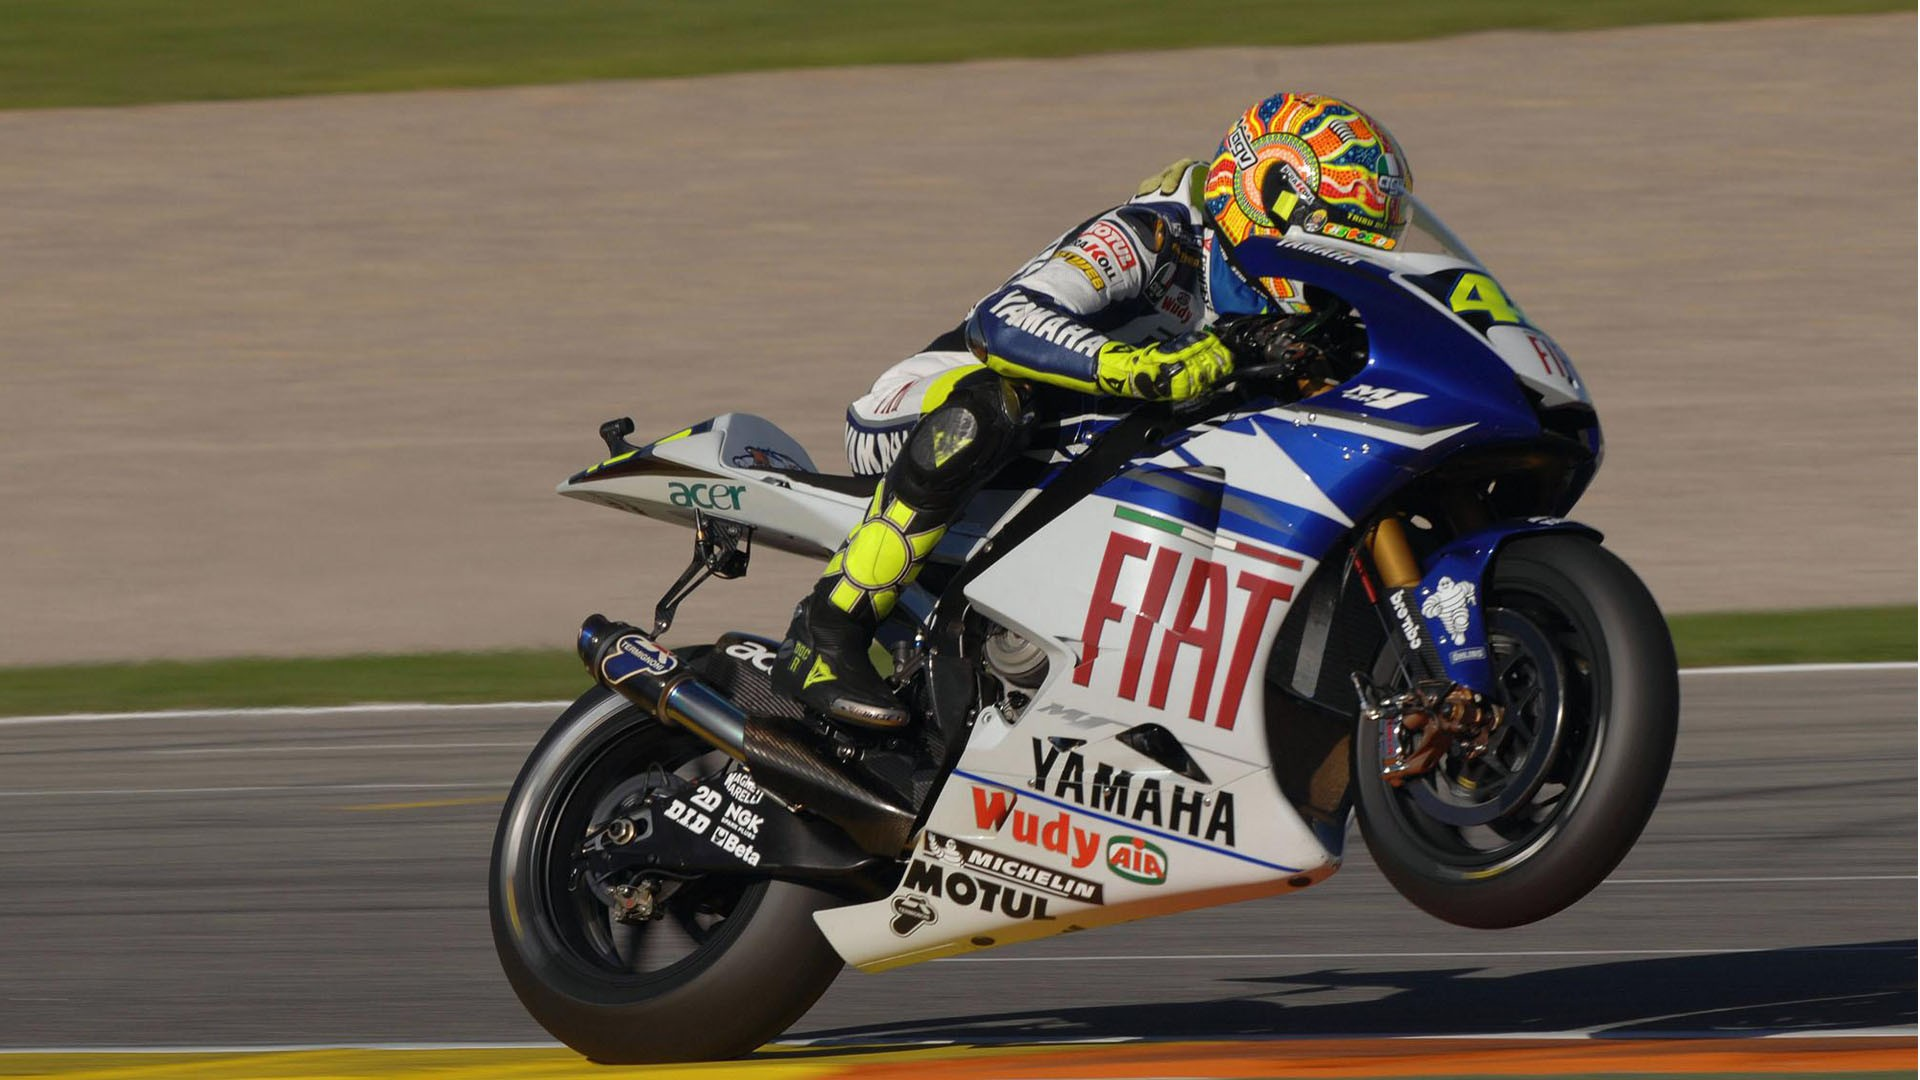 valentino rossi ndash wheelie - photo #42